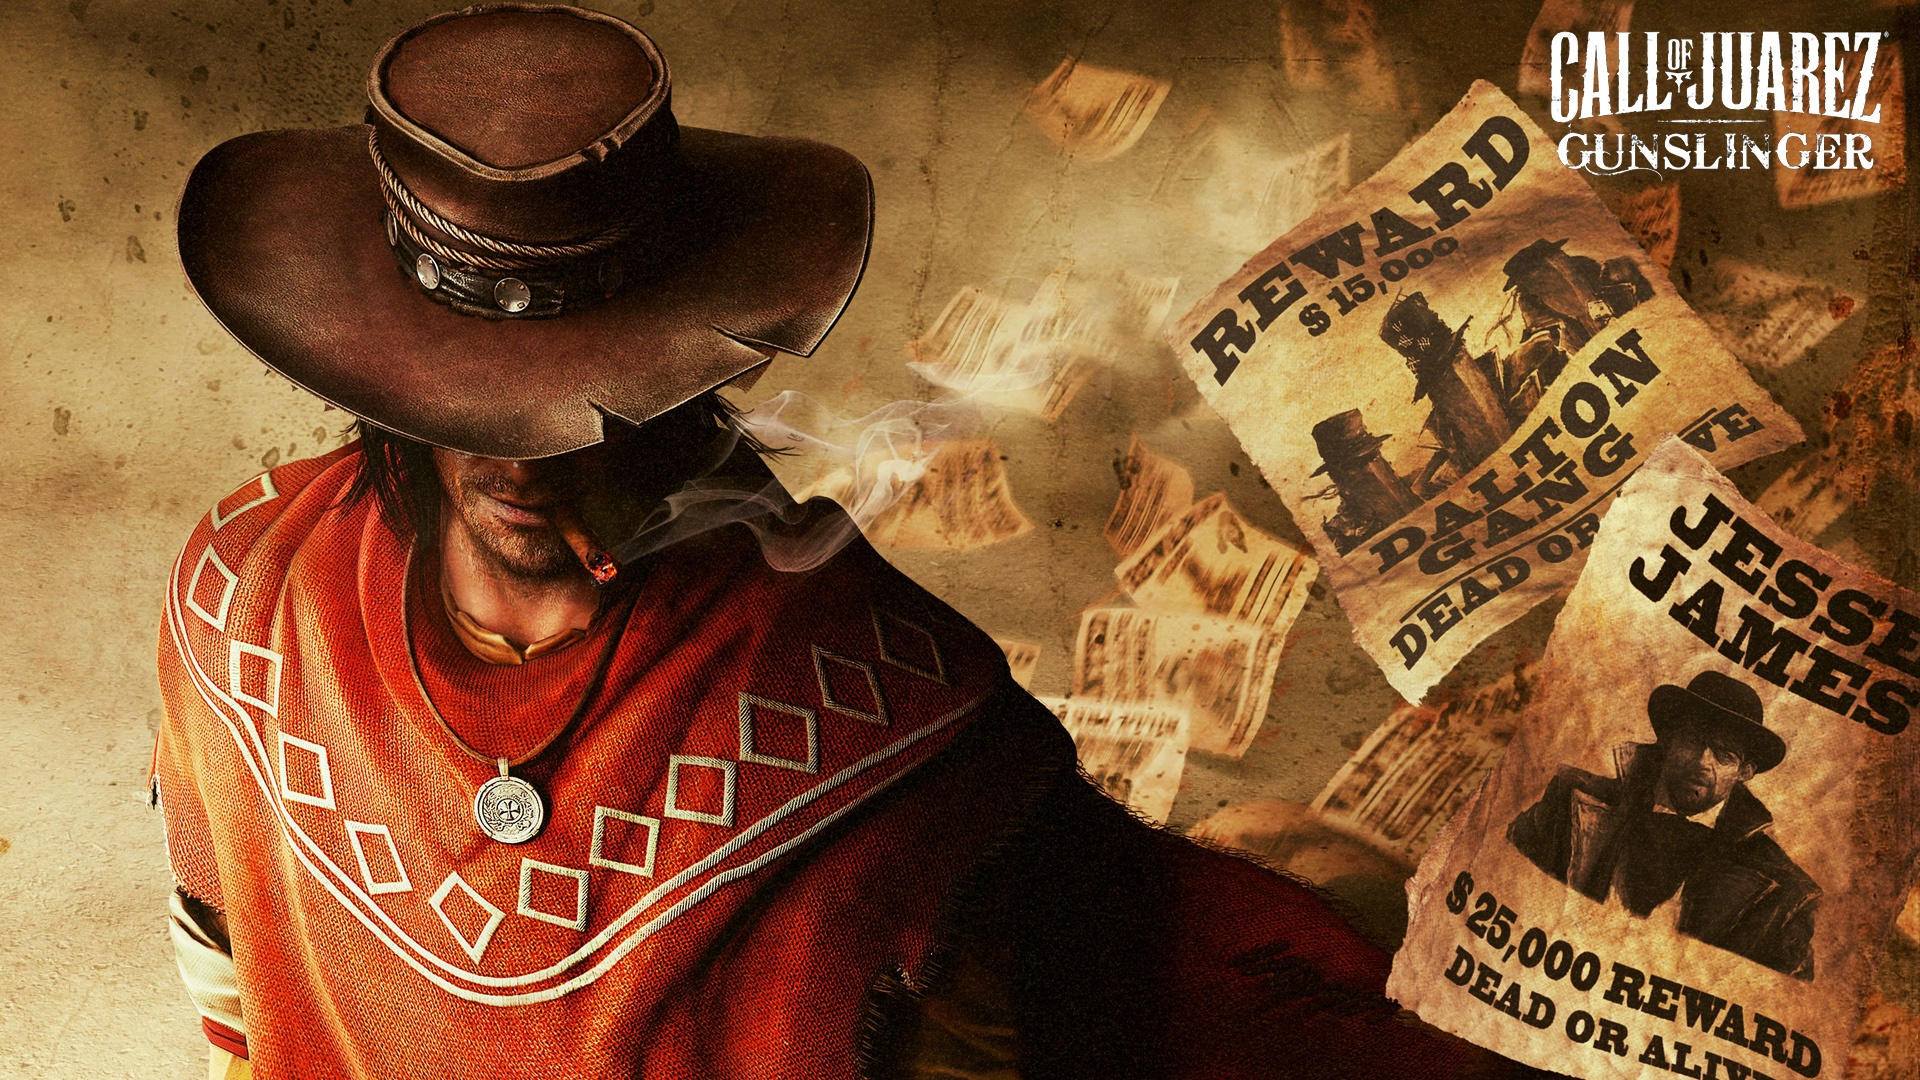 call of juarez gunslinger wallpapers - Call of Juarez Gunslinger HD desktop wallpaper